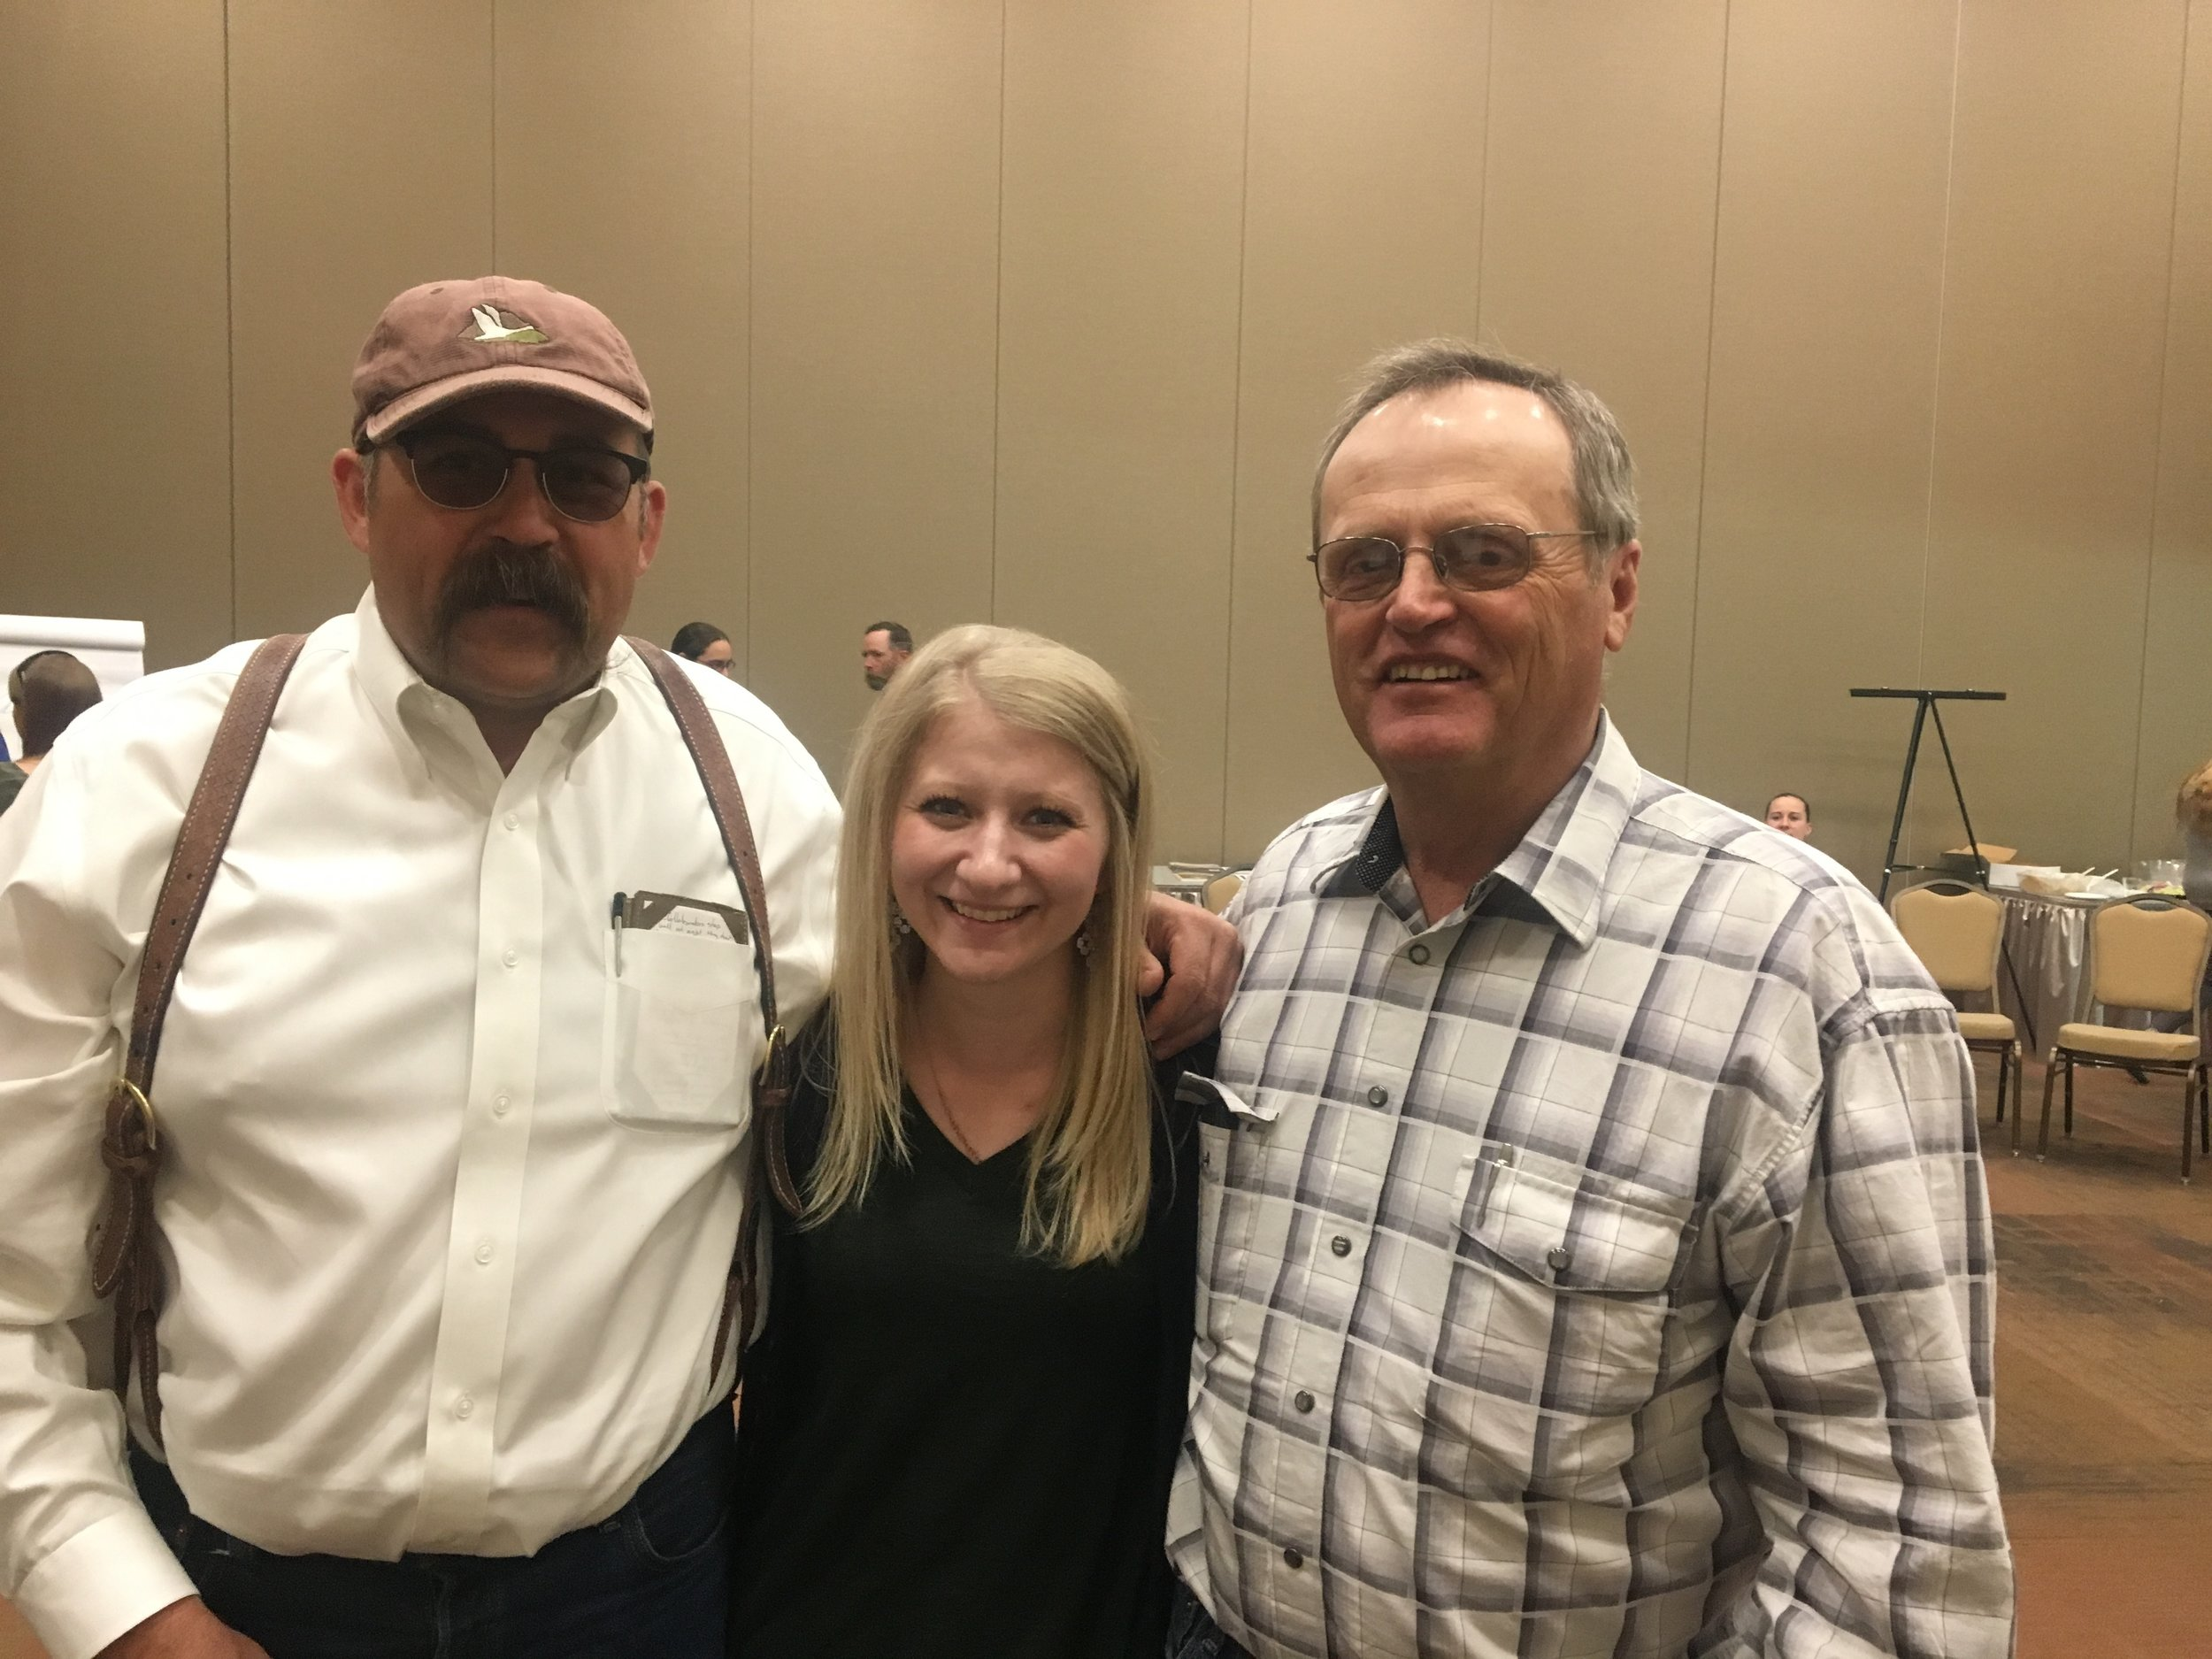 From left to right: Duane Coombs, Calee Lott and Jay Tanner.